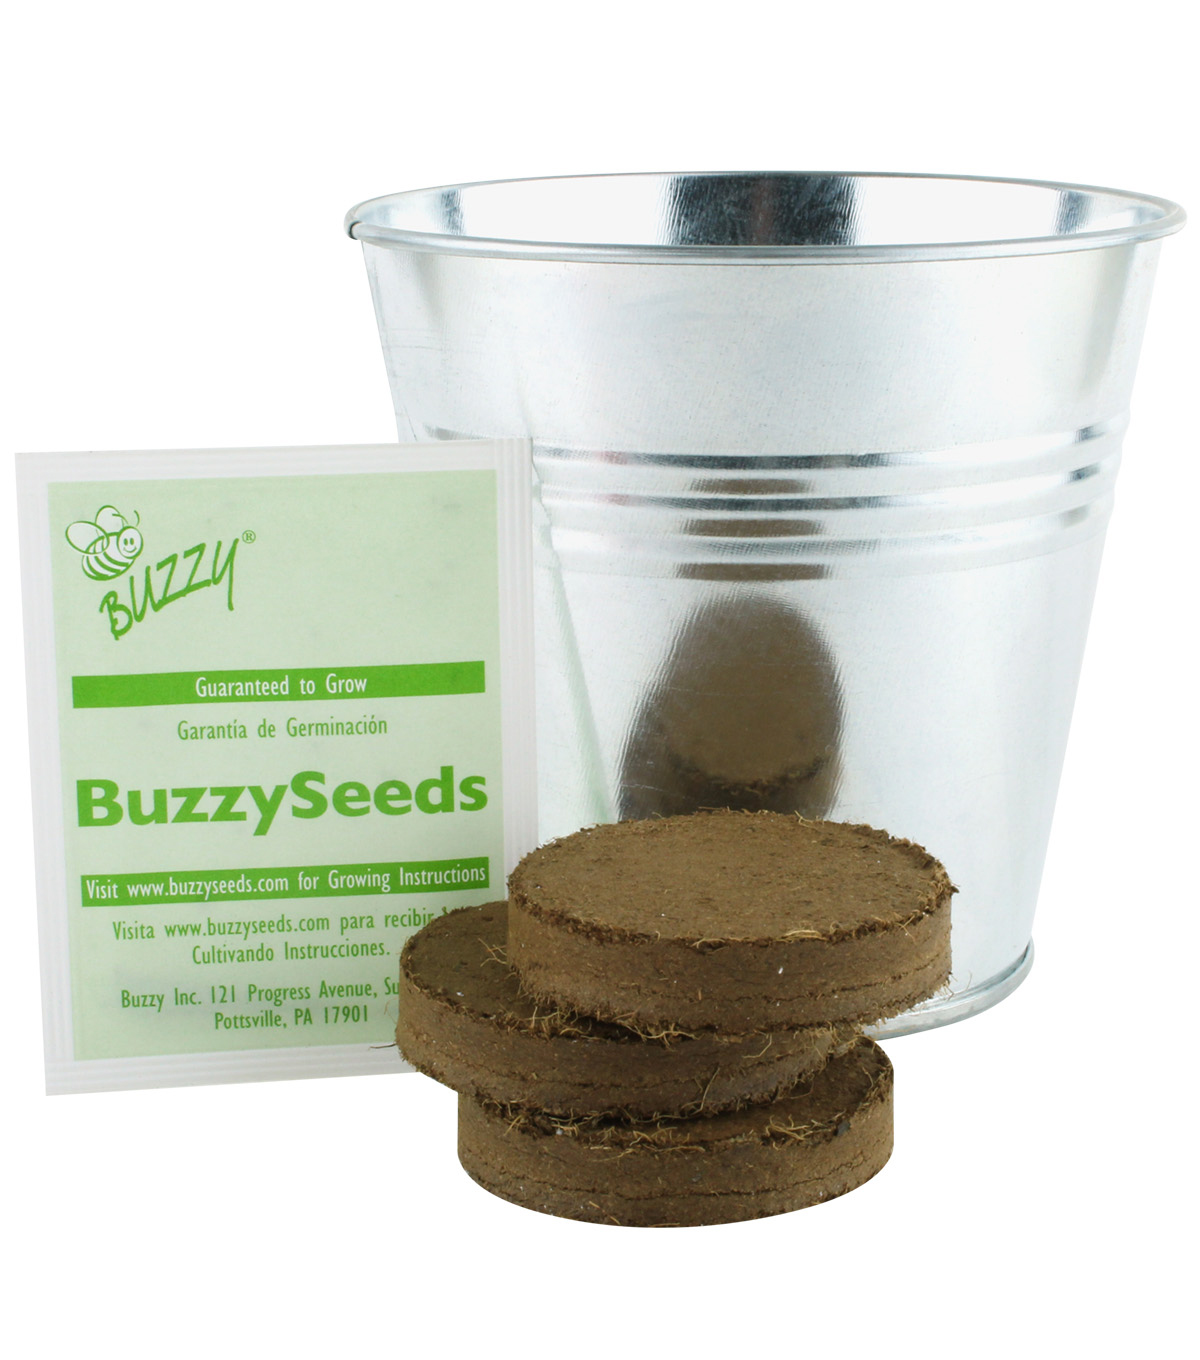 Buzzy Kale DIY Grow Kit with Galvanized Metal Pail